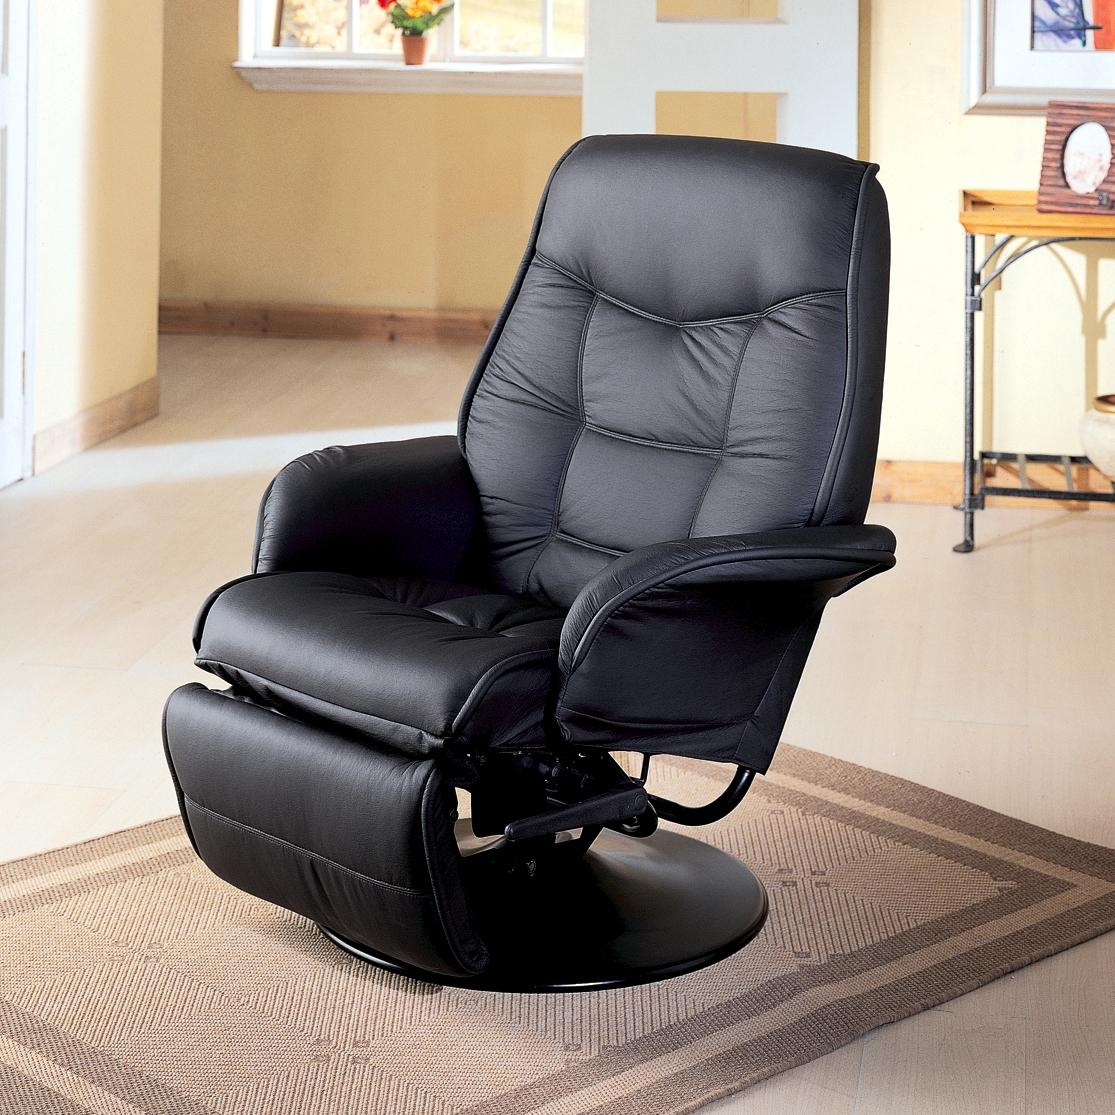 Ergonomic Recliner Chairs 15